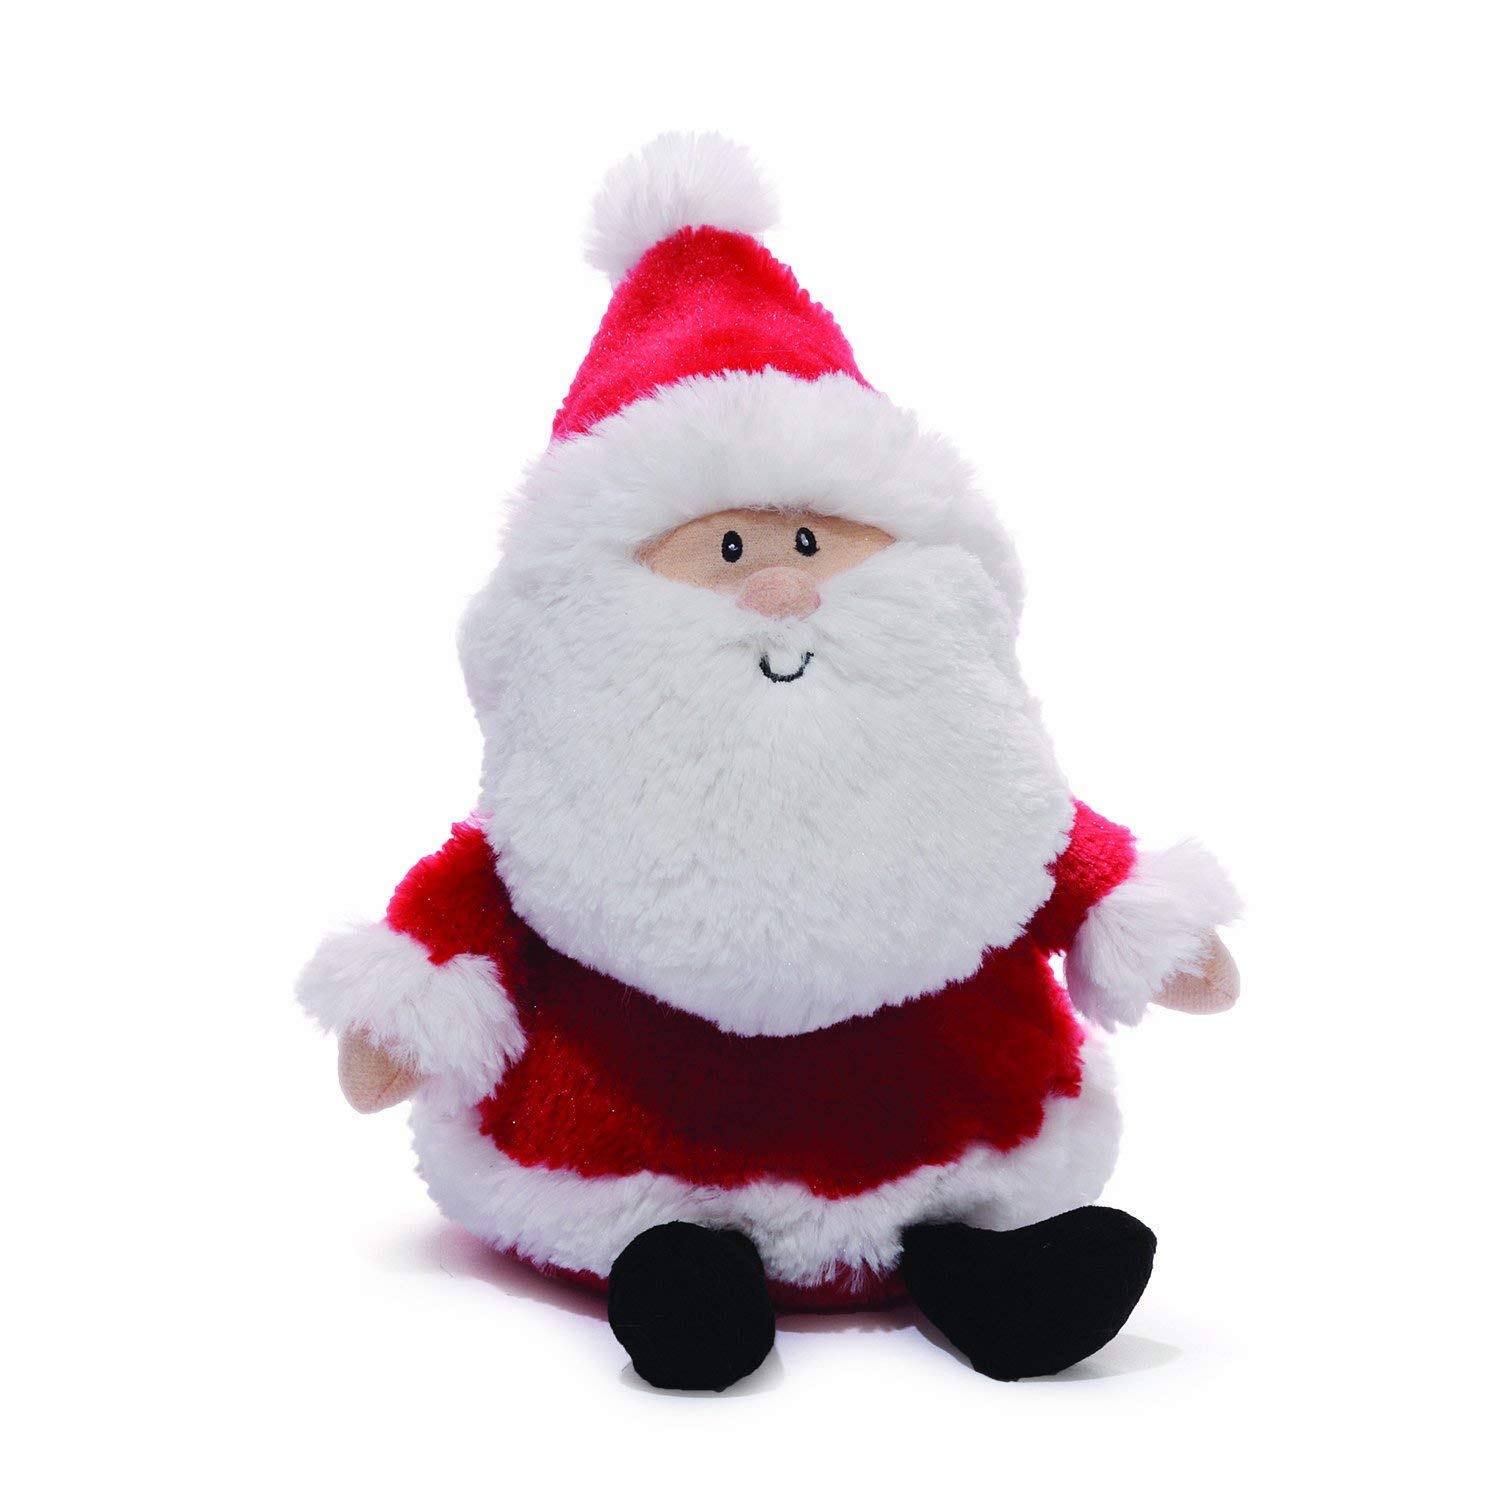 Image of Santa Claus Christmas Plush Toy